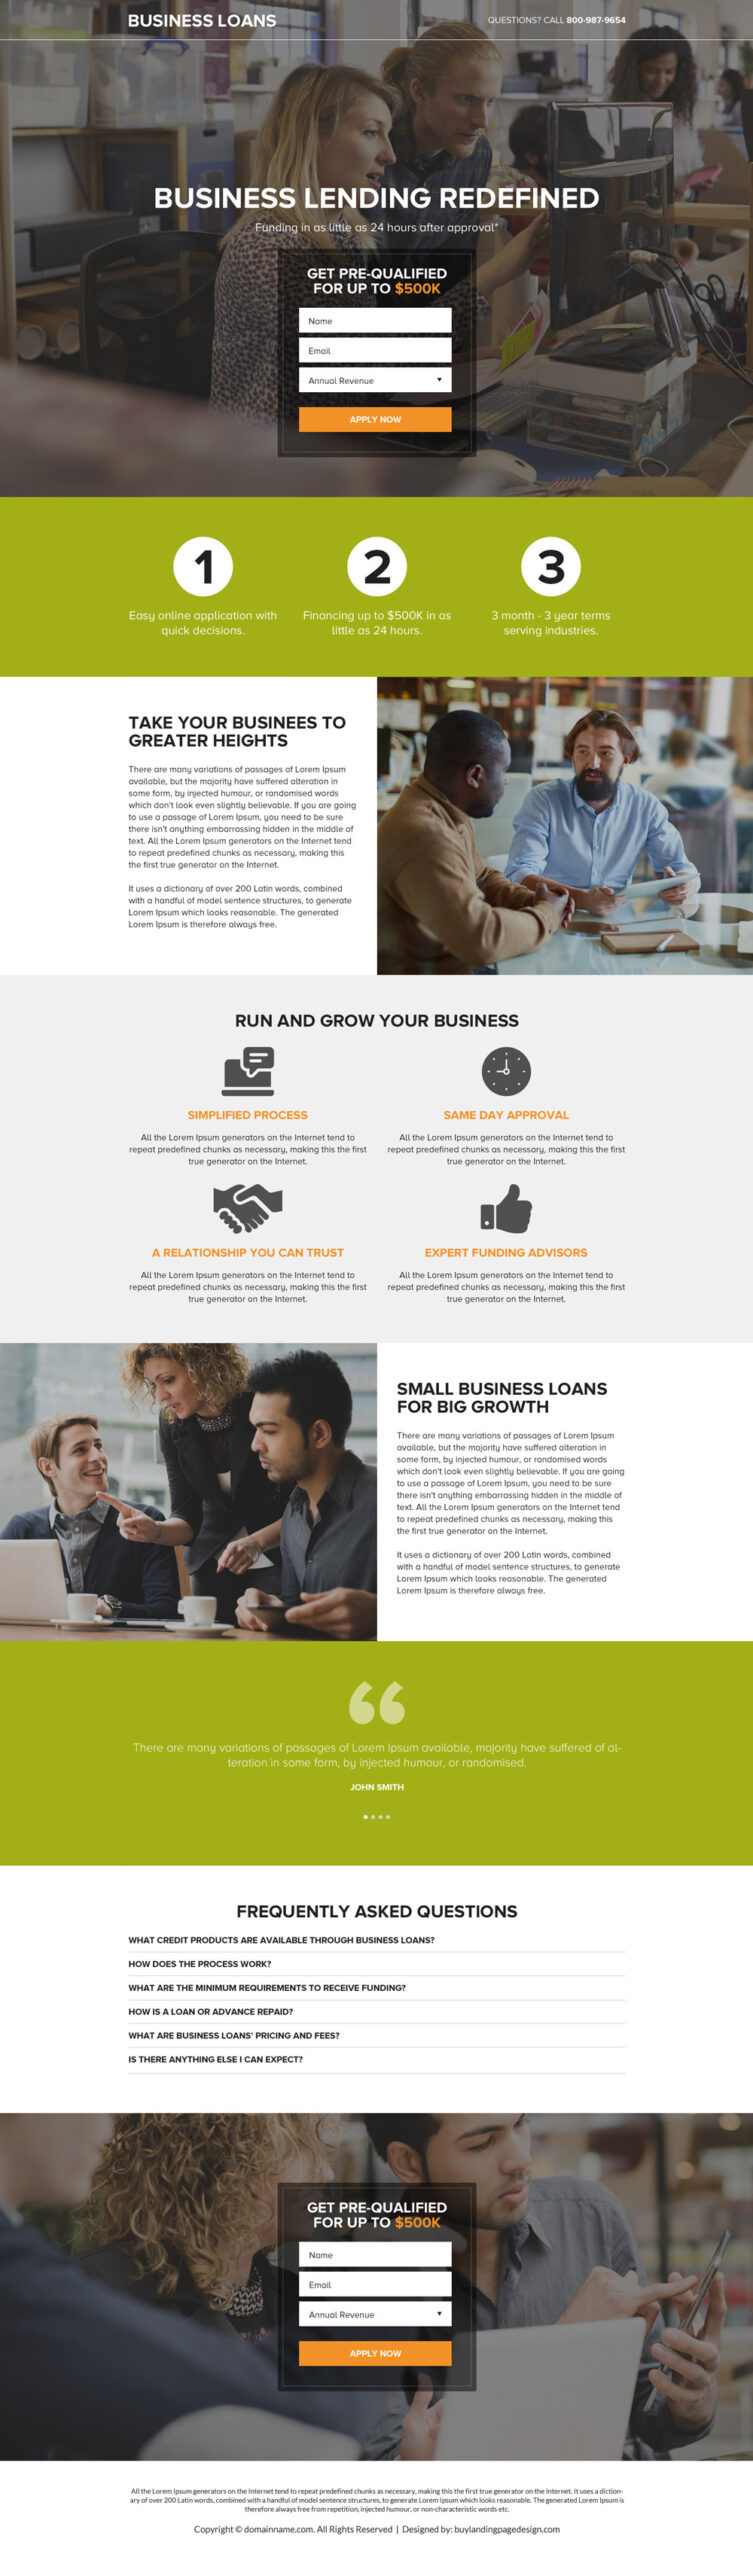 Business loan lenders landing page